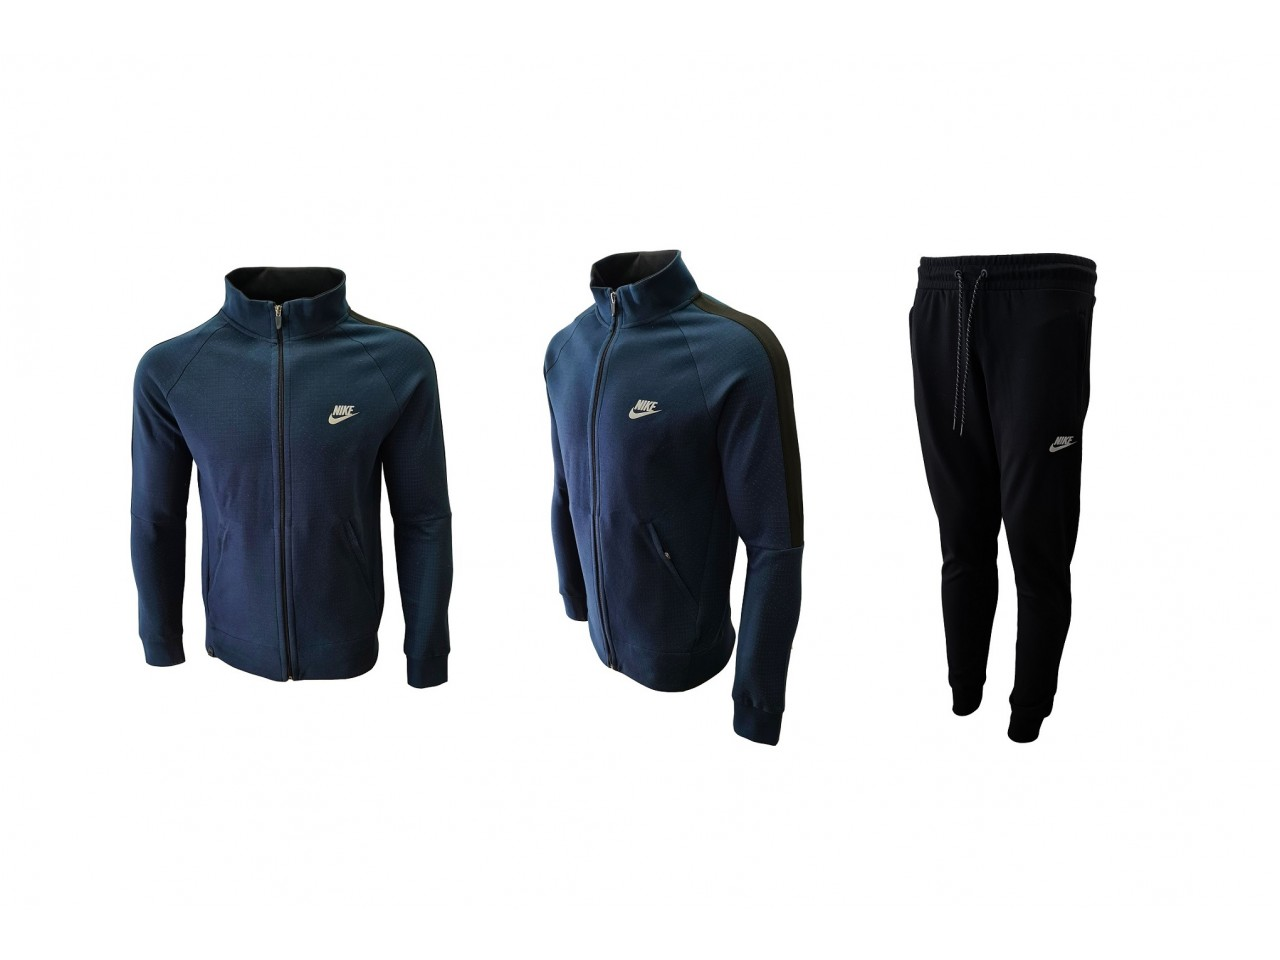 Nike Tracksuit New Model Dark Blue Black